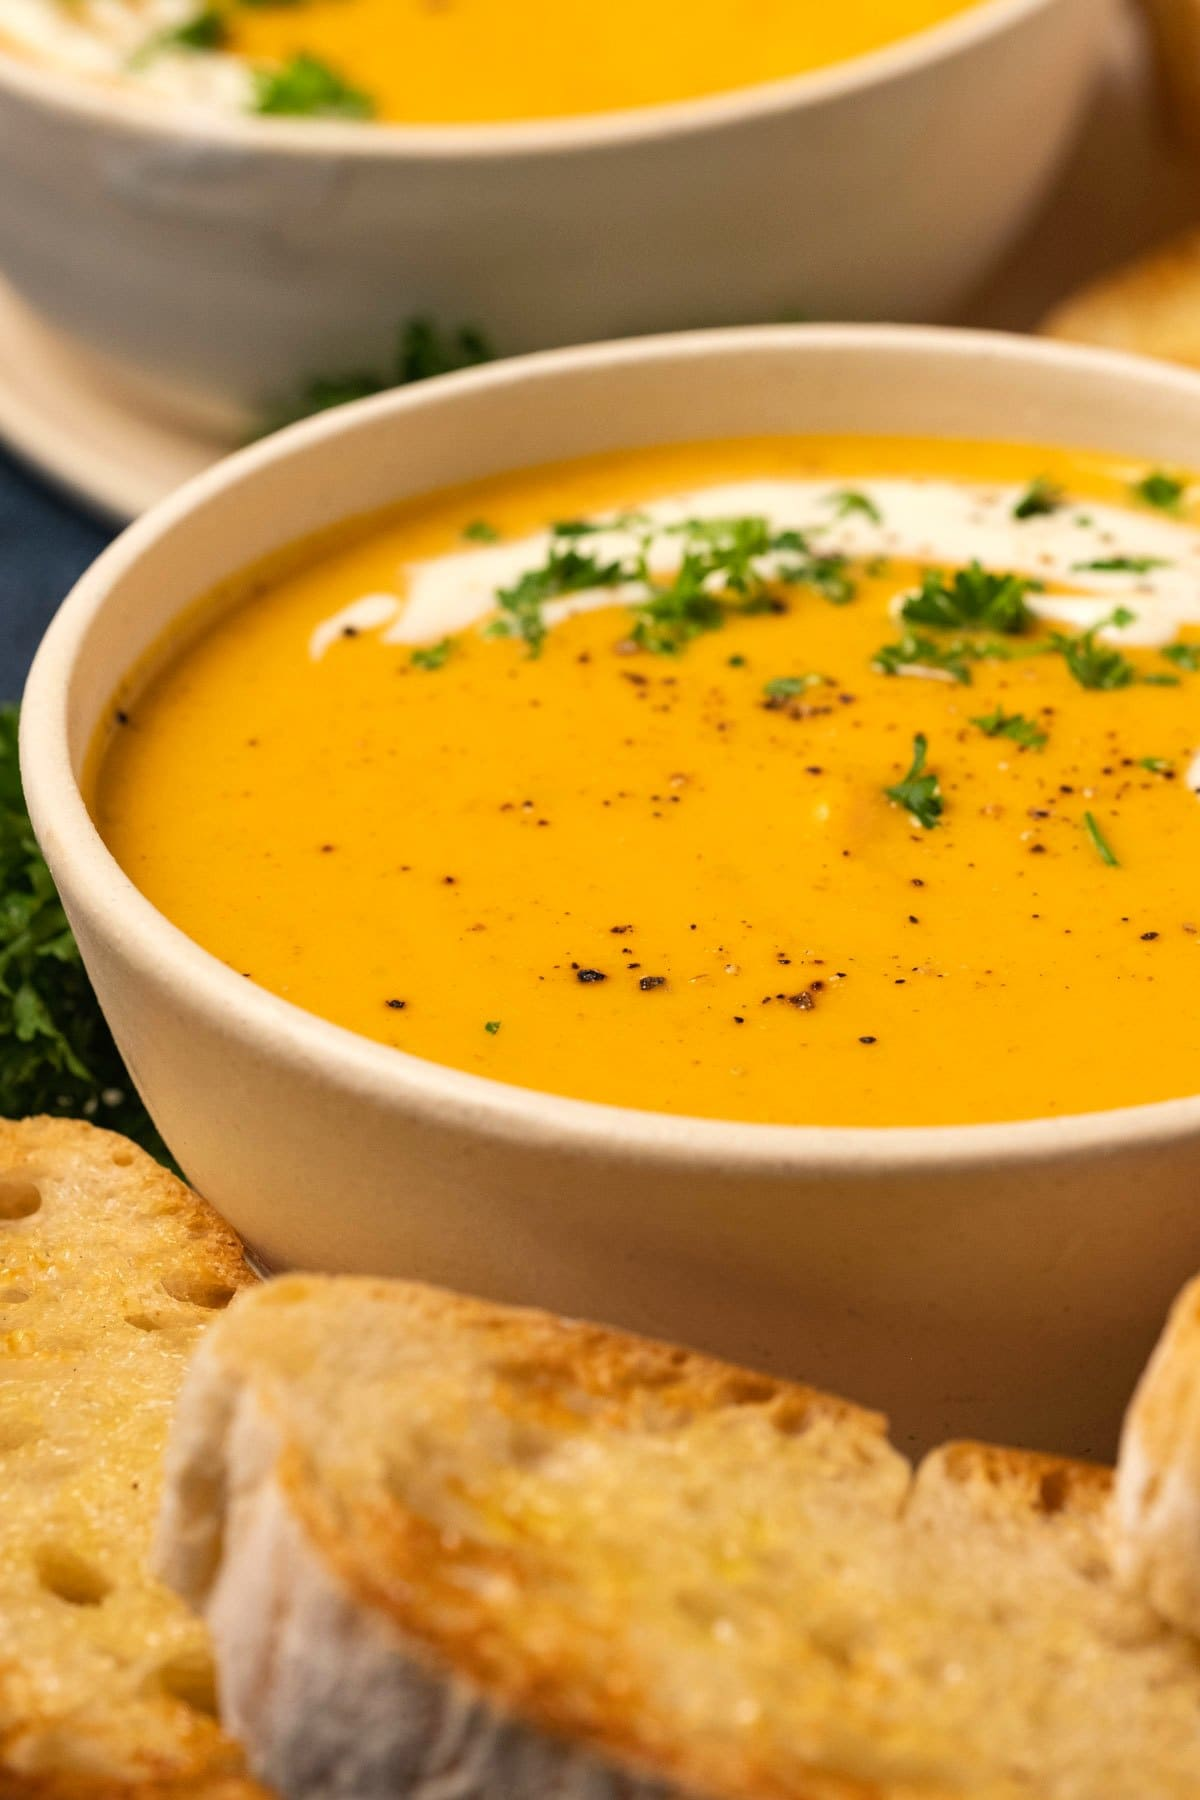 Sweet potato soup with cream and fresh parsley in a white bowl.